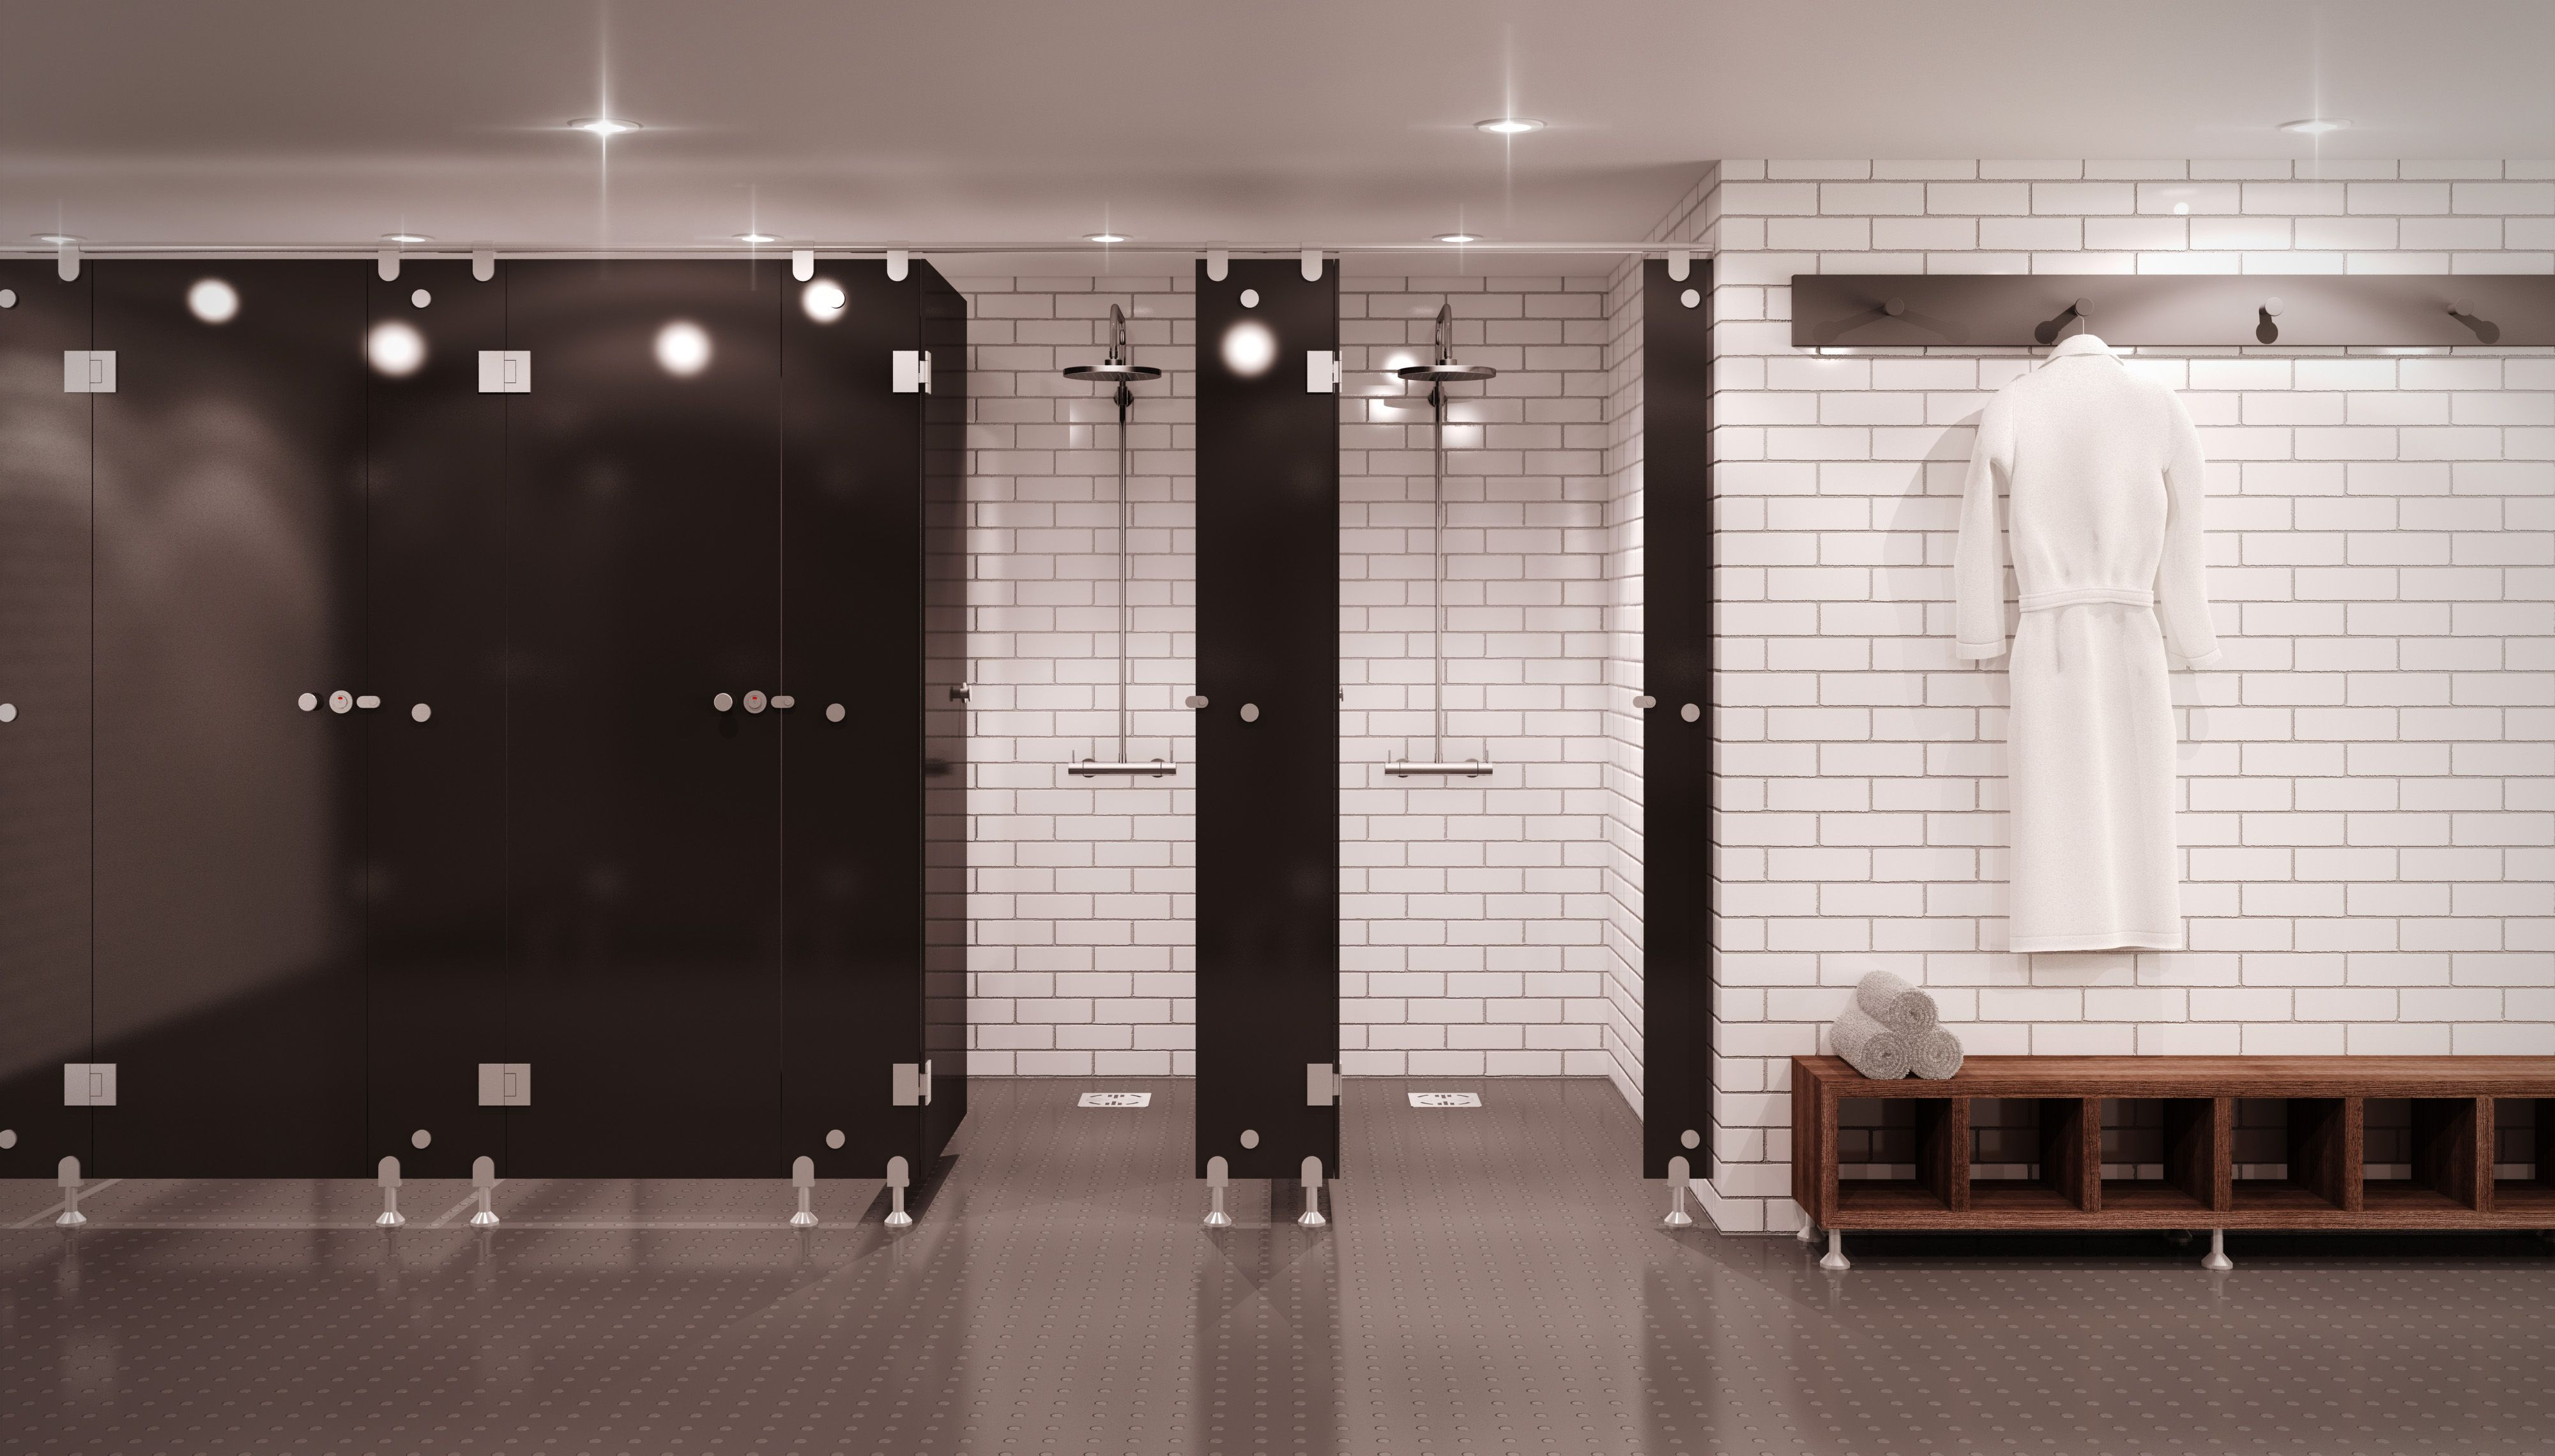 ultra modern with a flush frontage prism is the glass cubicle